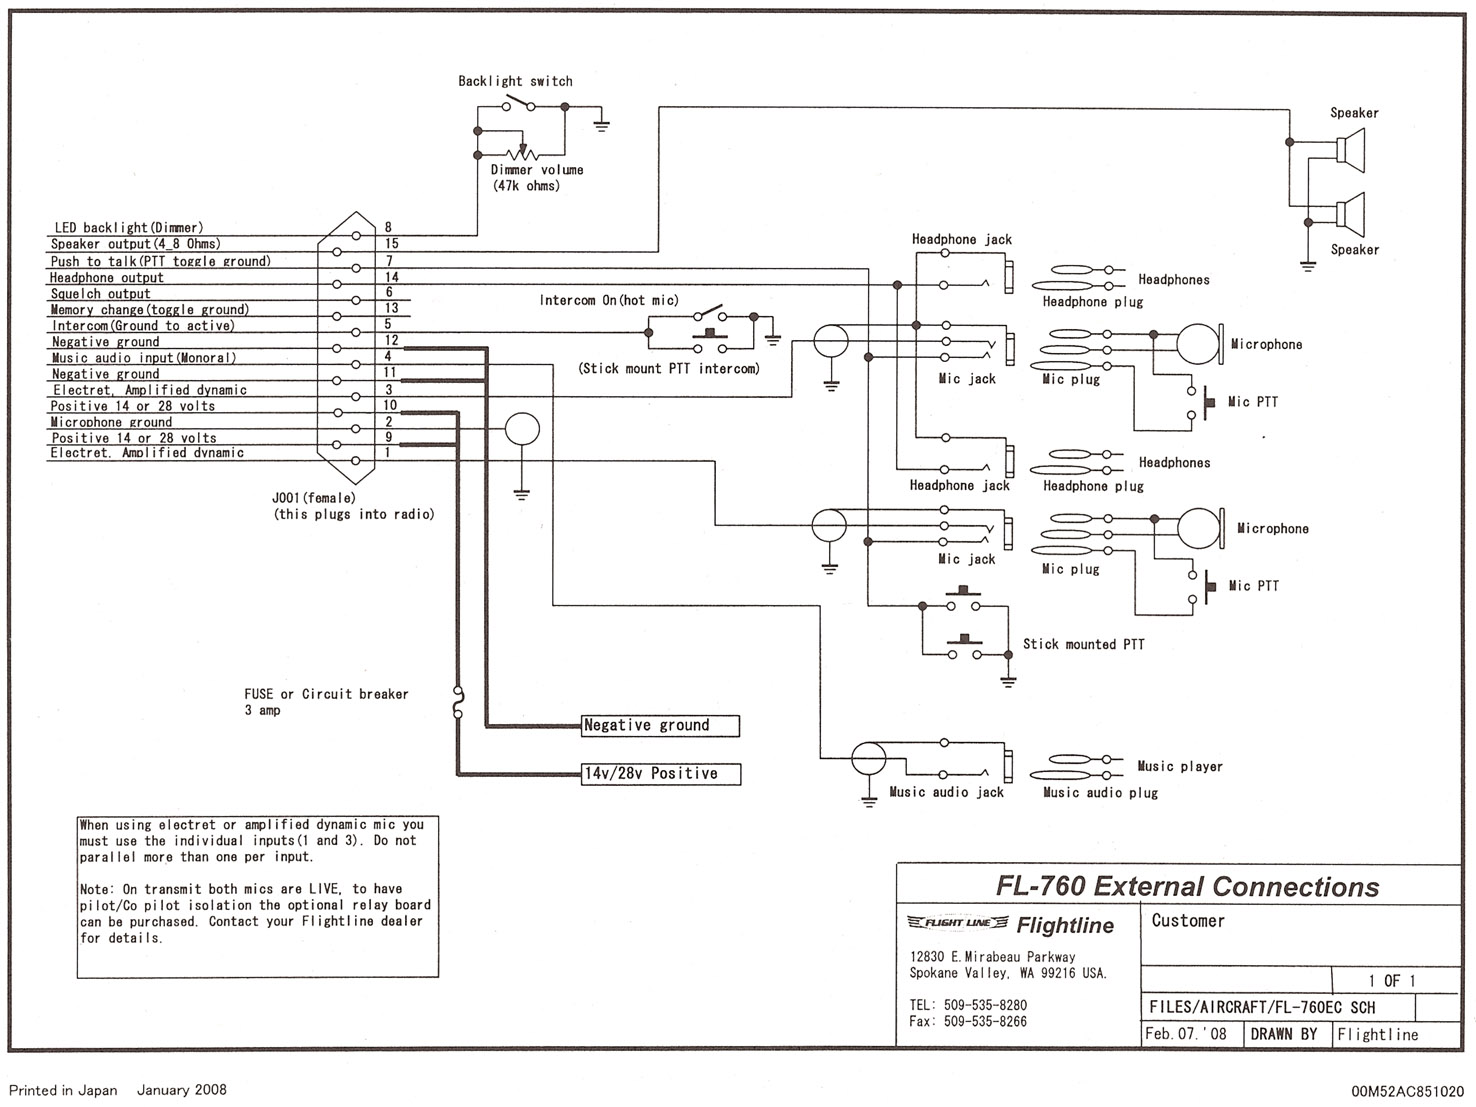 fl_760_wiring_diagram_934?resize\\\=665%2C499 narco com 11a wiring diagram narco 810 pinout \u2022 indy500 co narco 810 wiring diagram at creativeand.co